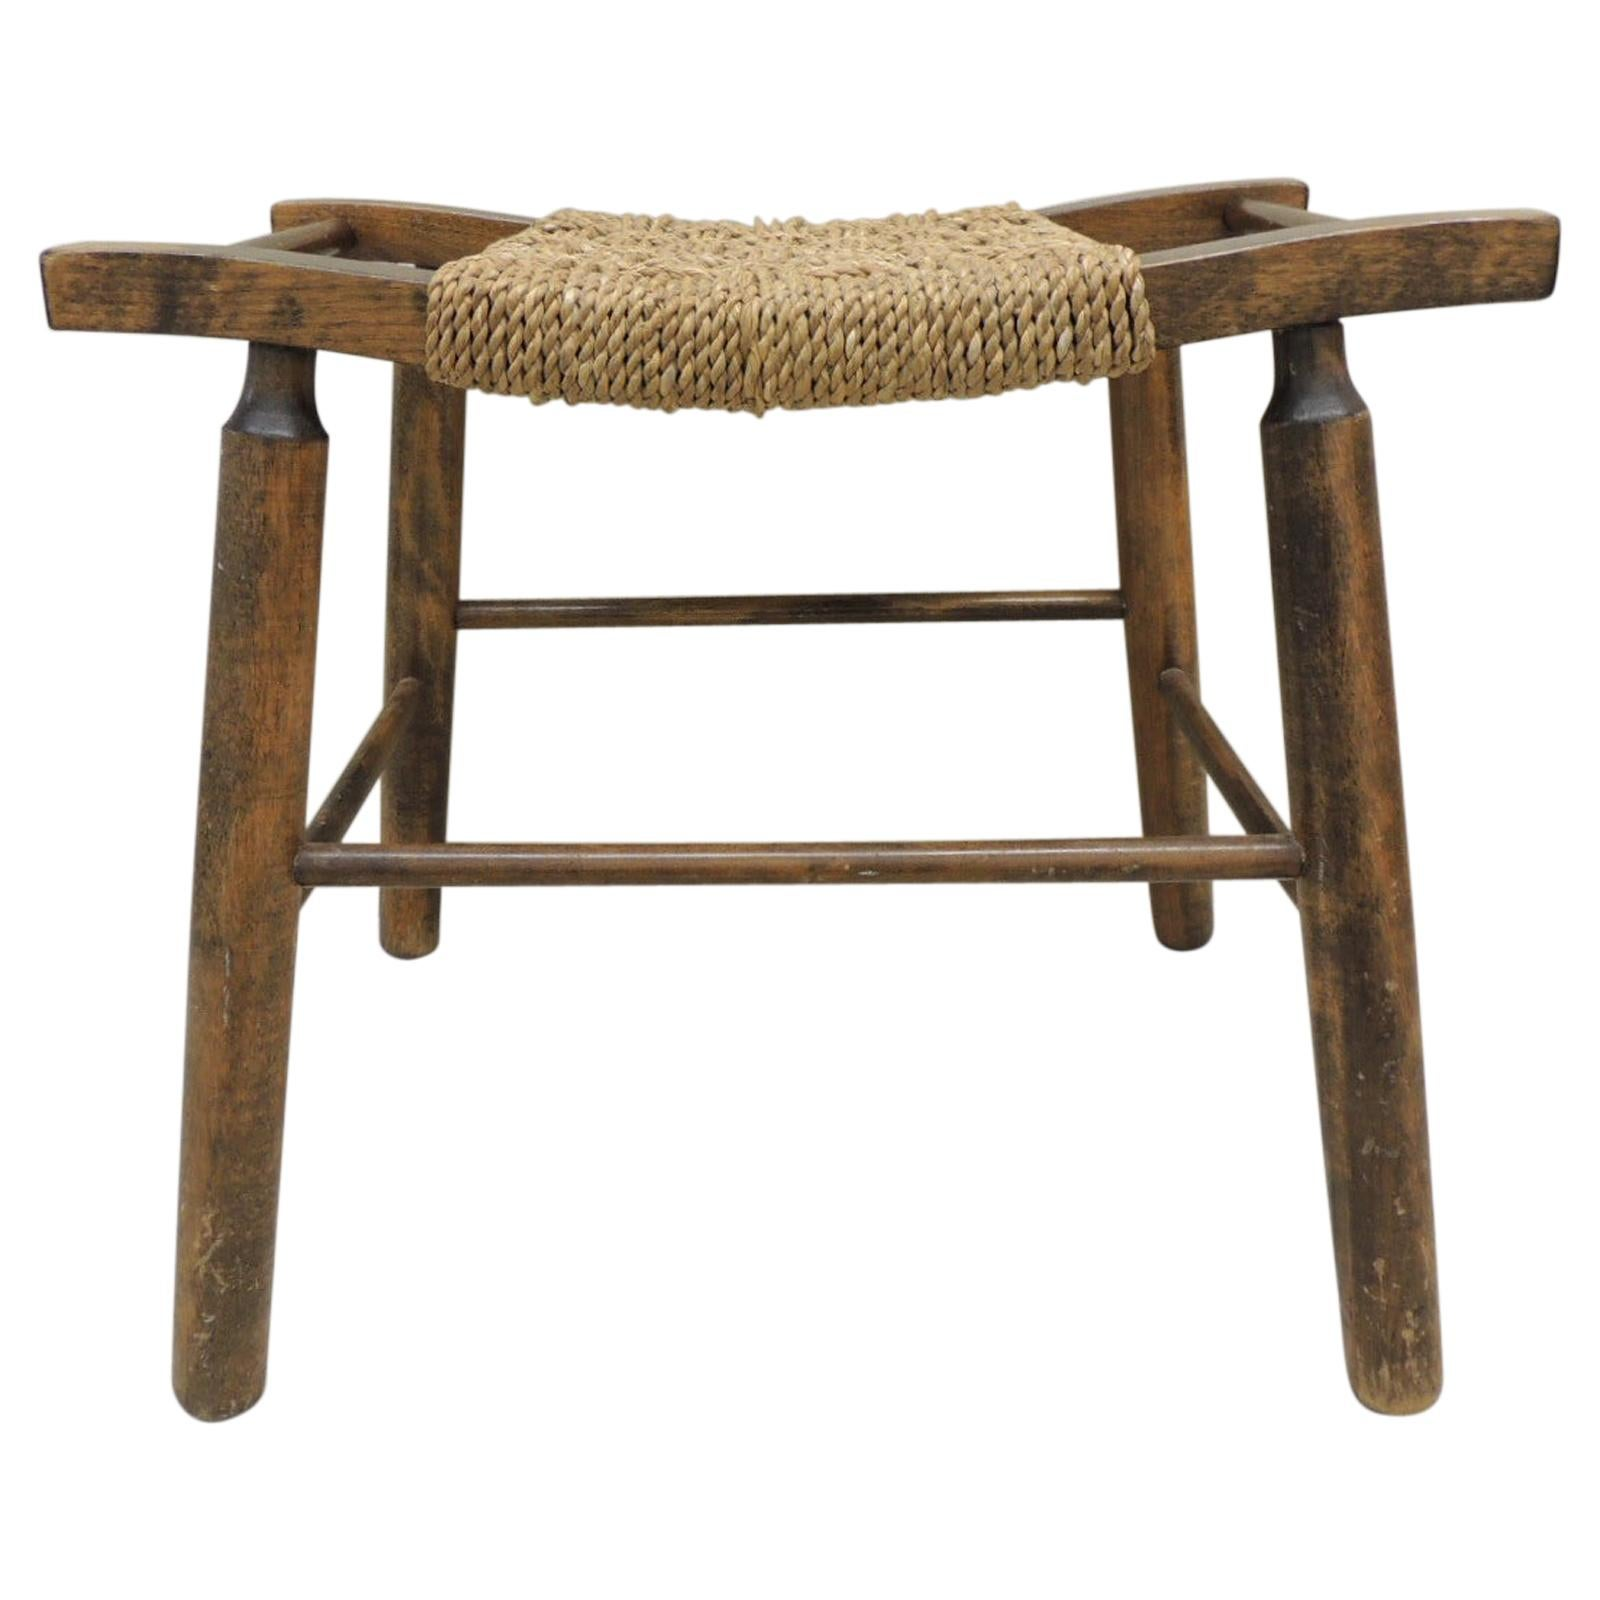 Vintage Mid-Century Modern Stool with Woven Twine Seat